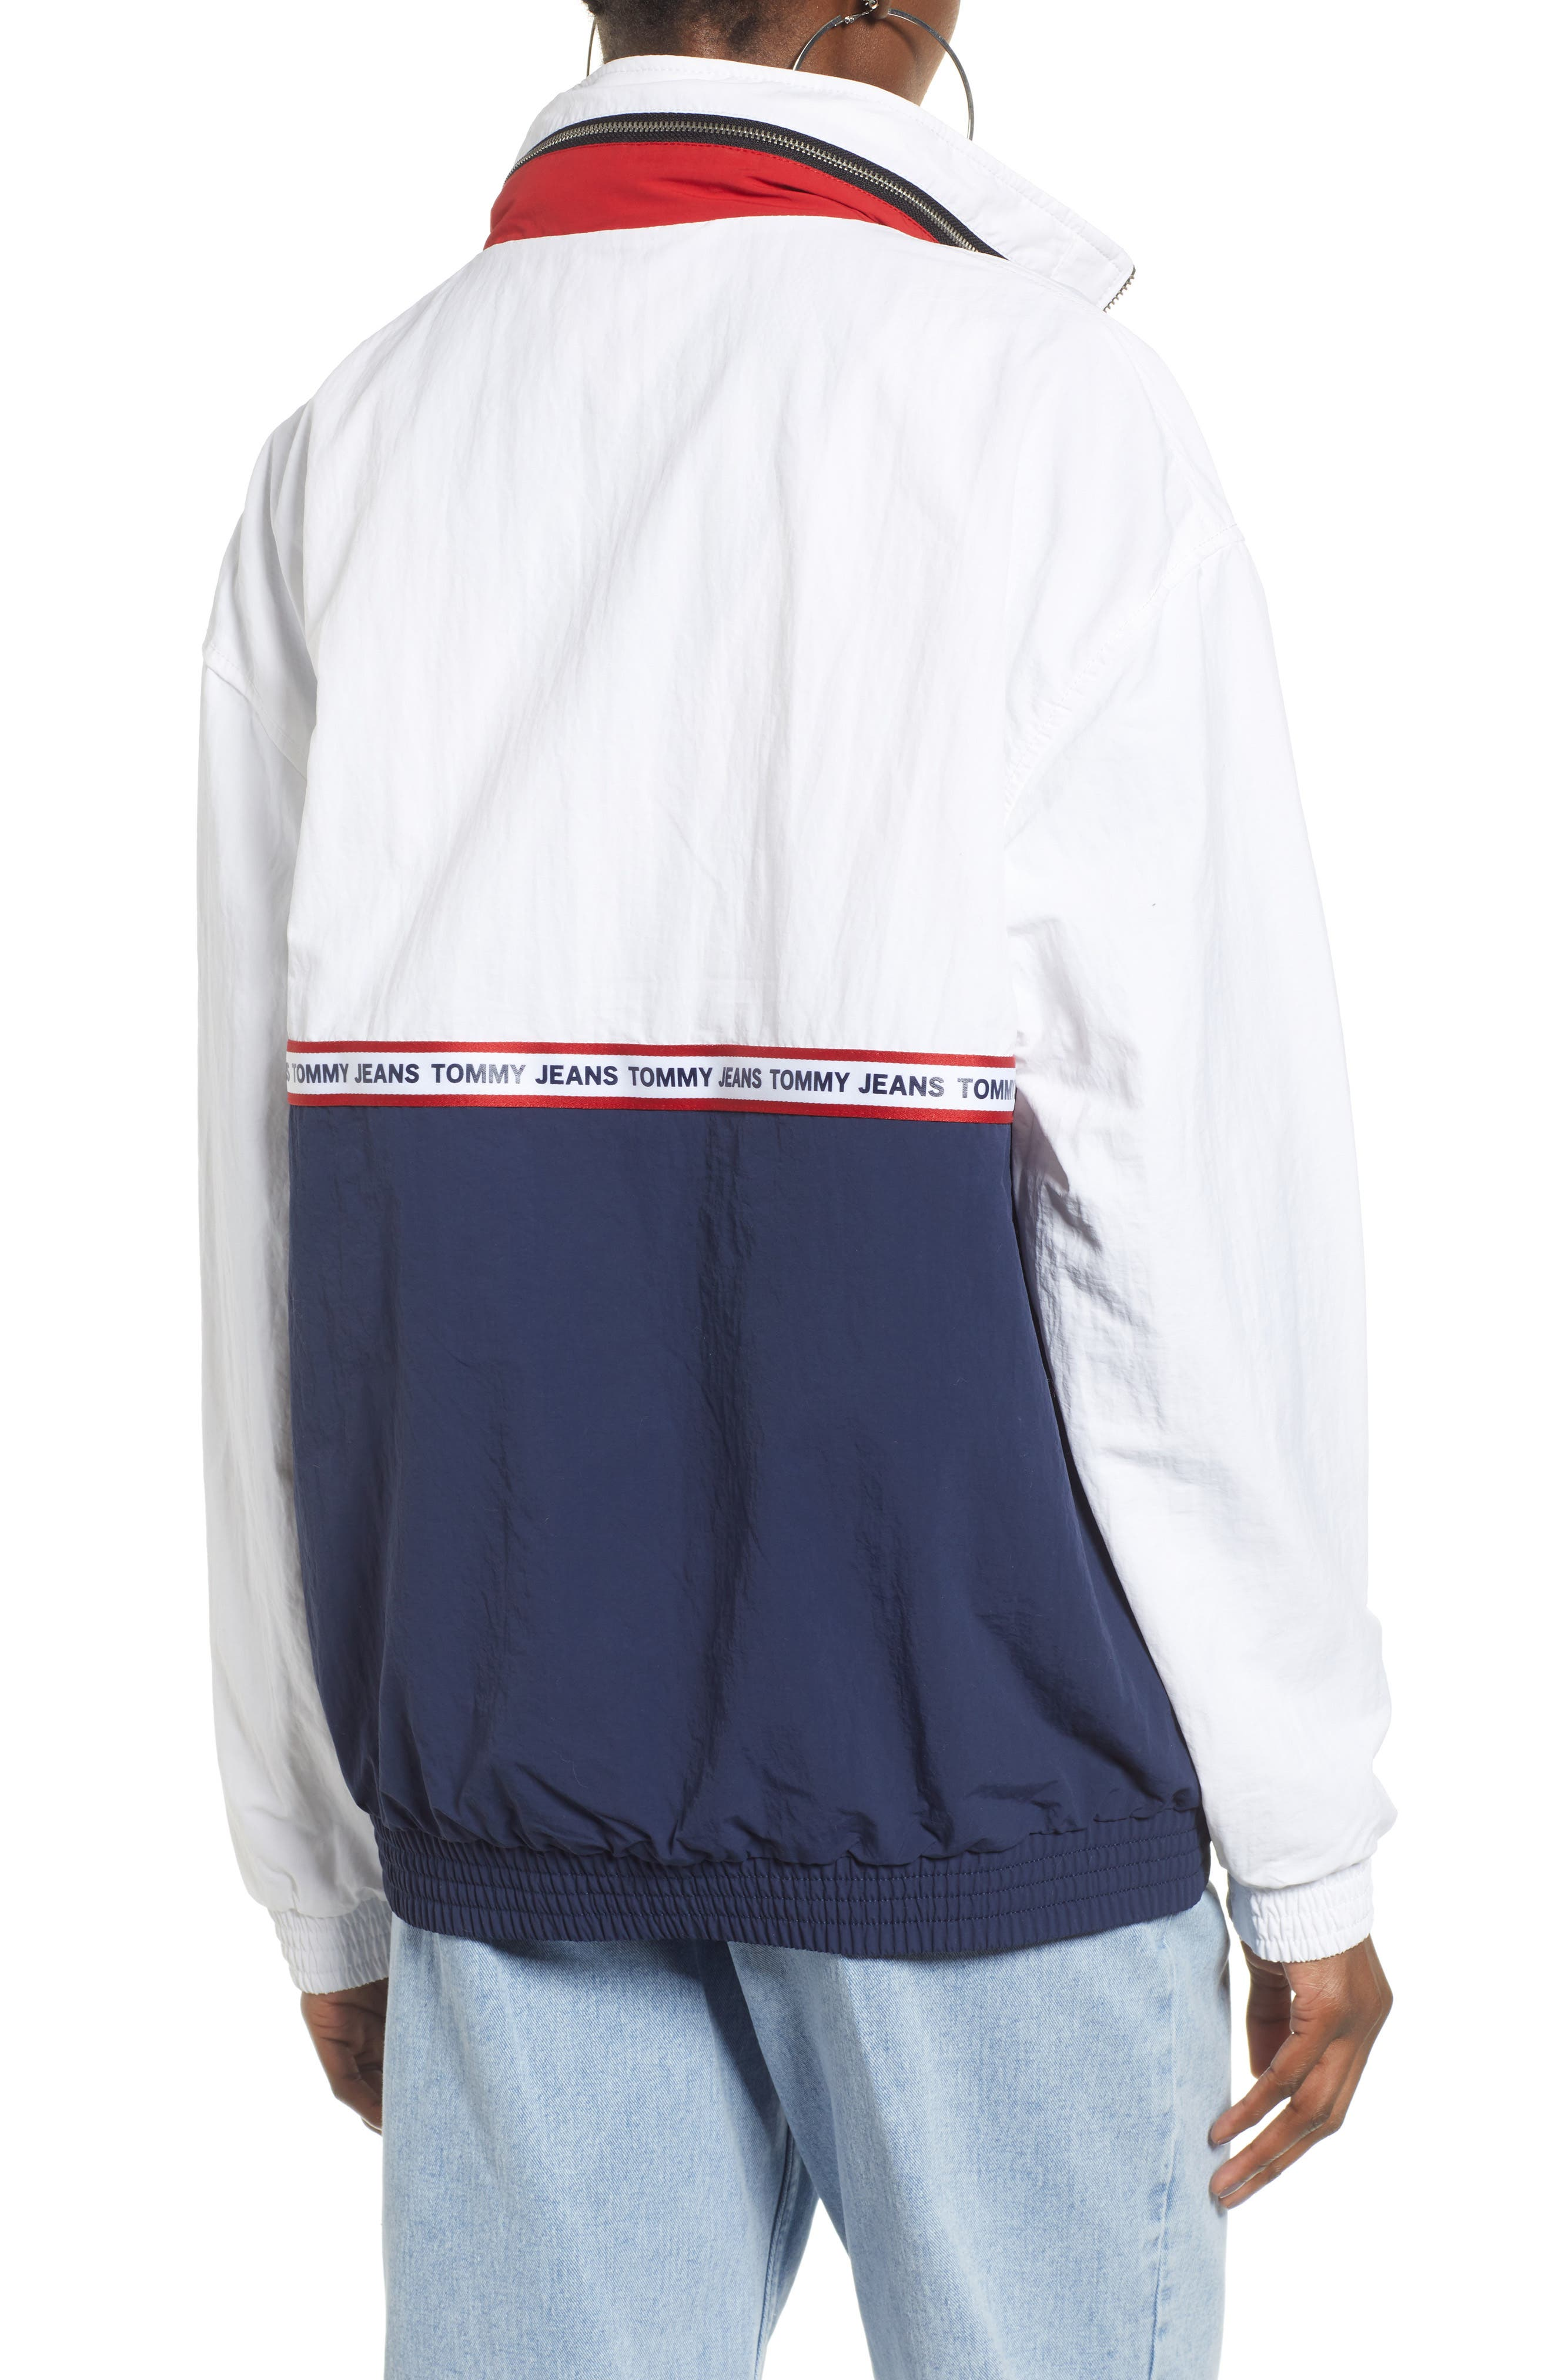 TOMMY JEANS,                             TJW Logo Tape Pullover,                             Alternate thumbnail 2, color,                             400